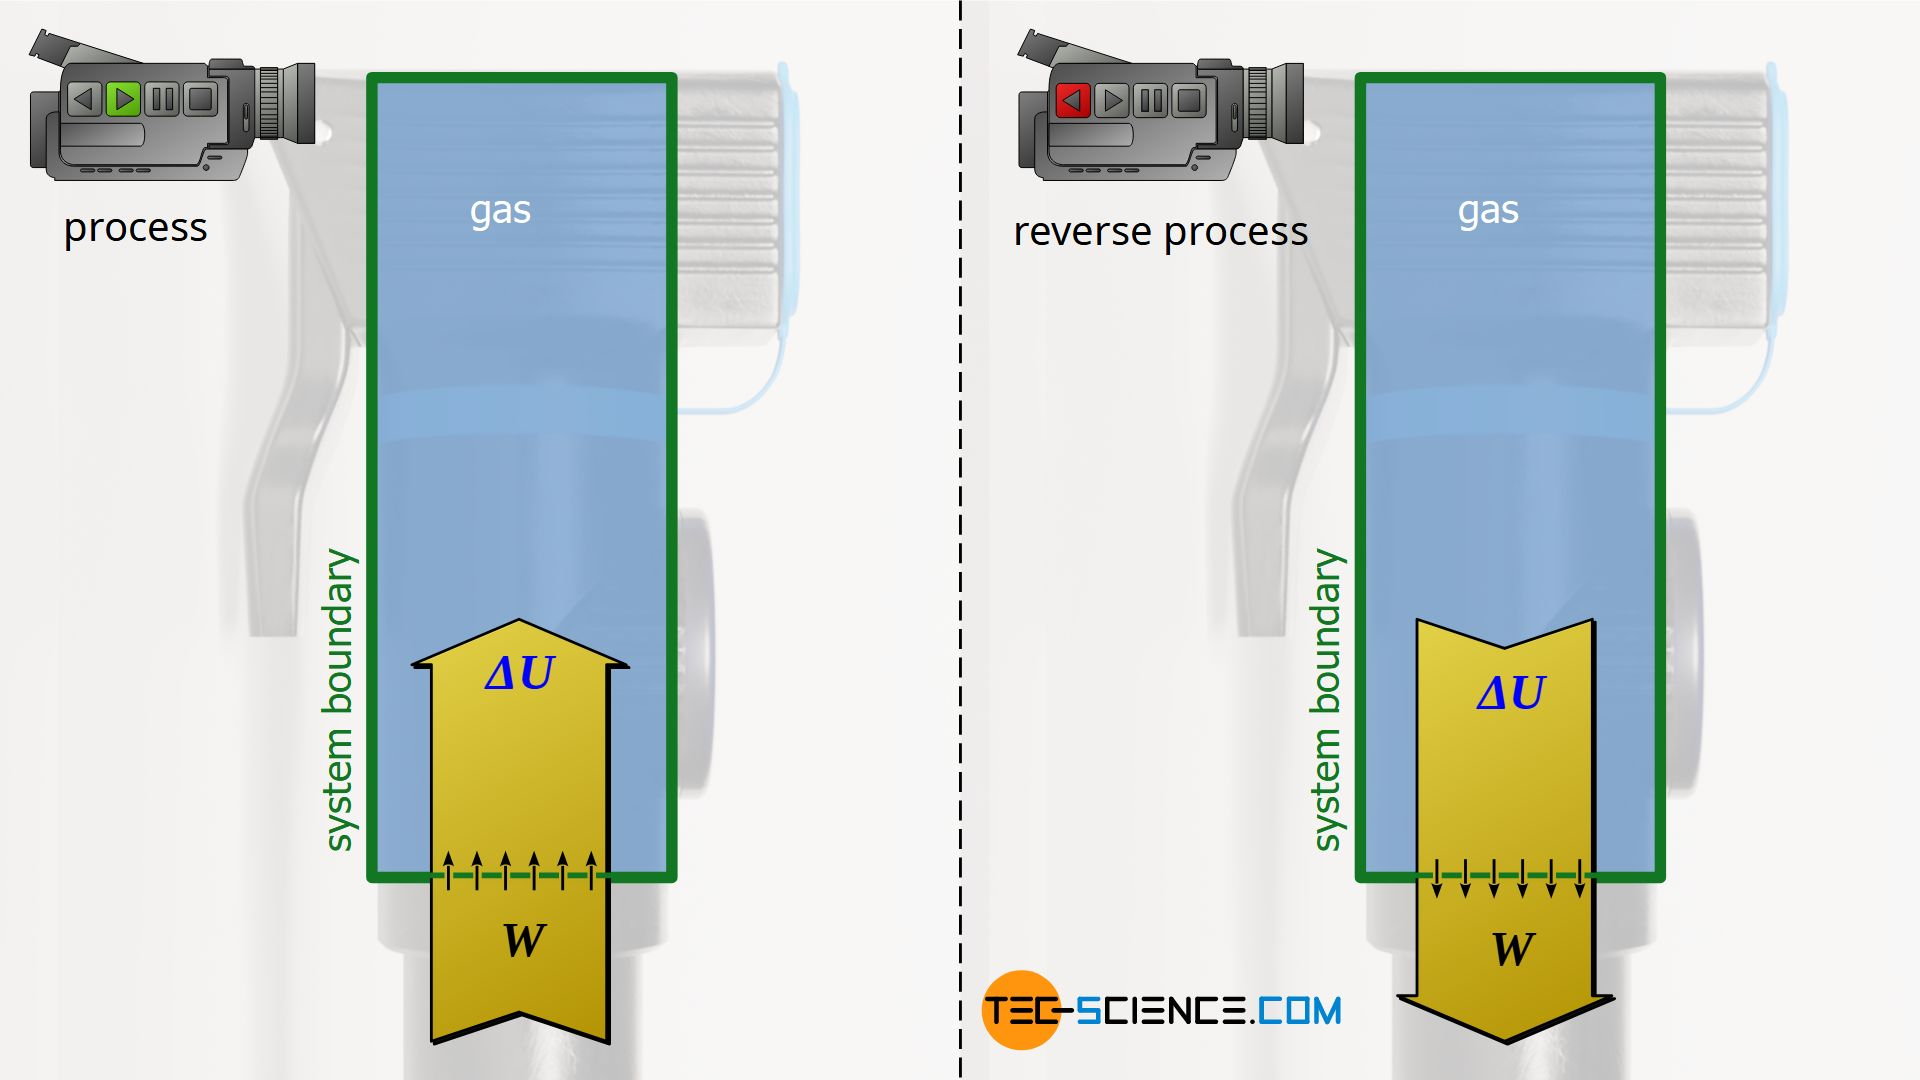 Isentropic compression of a gas / isentropic expansion of a gas